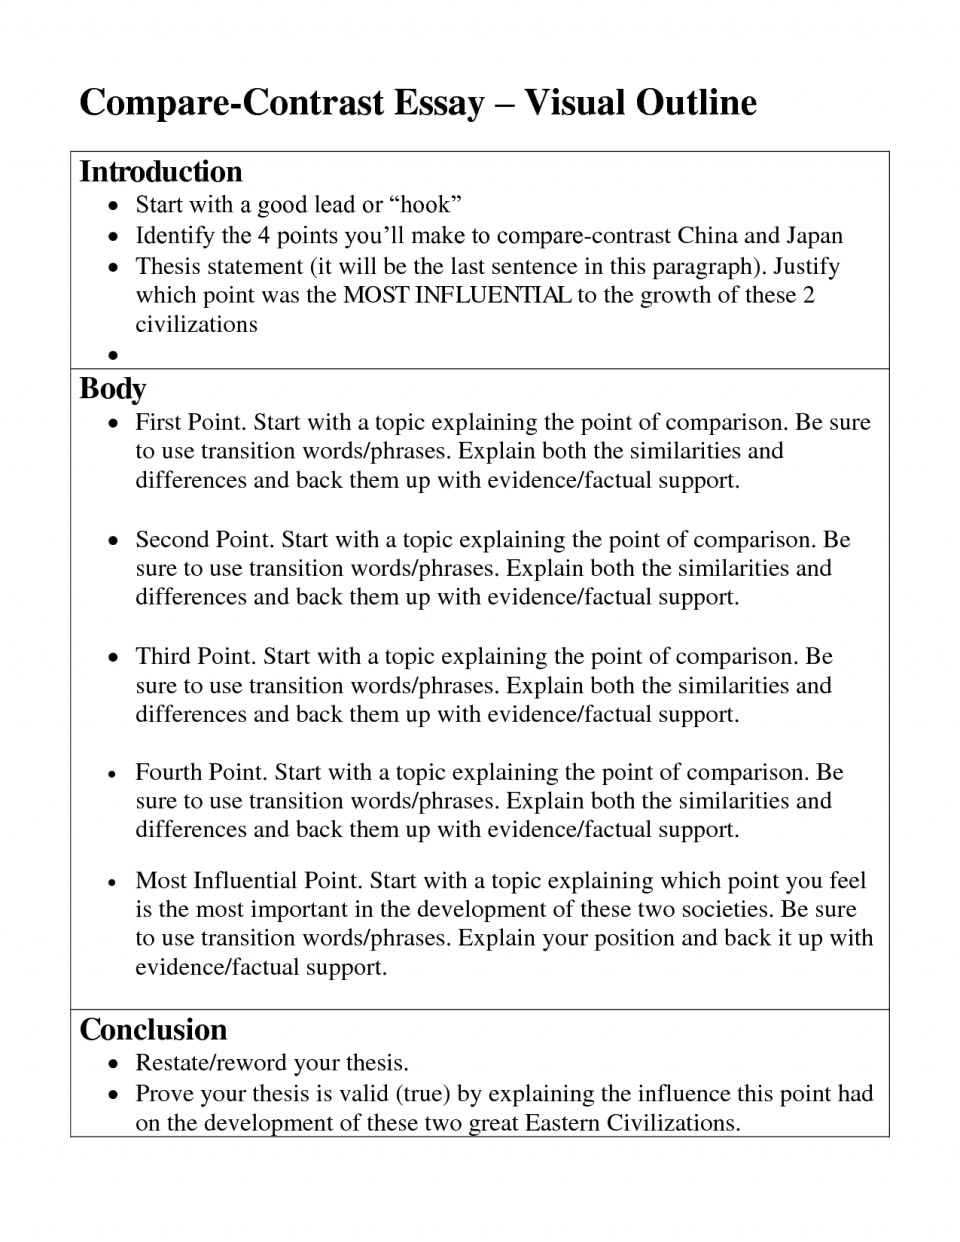 004 Comparison And Contrast Essay Outline Impressive Compare 5th Grade High School Template 960